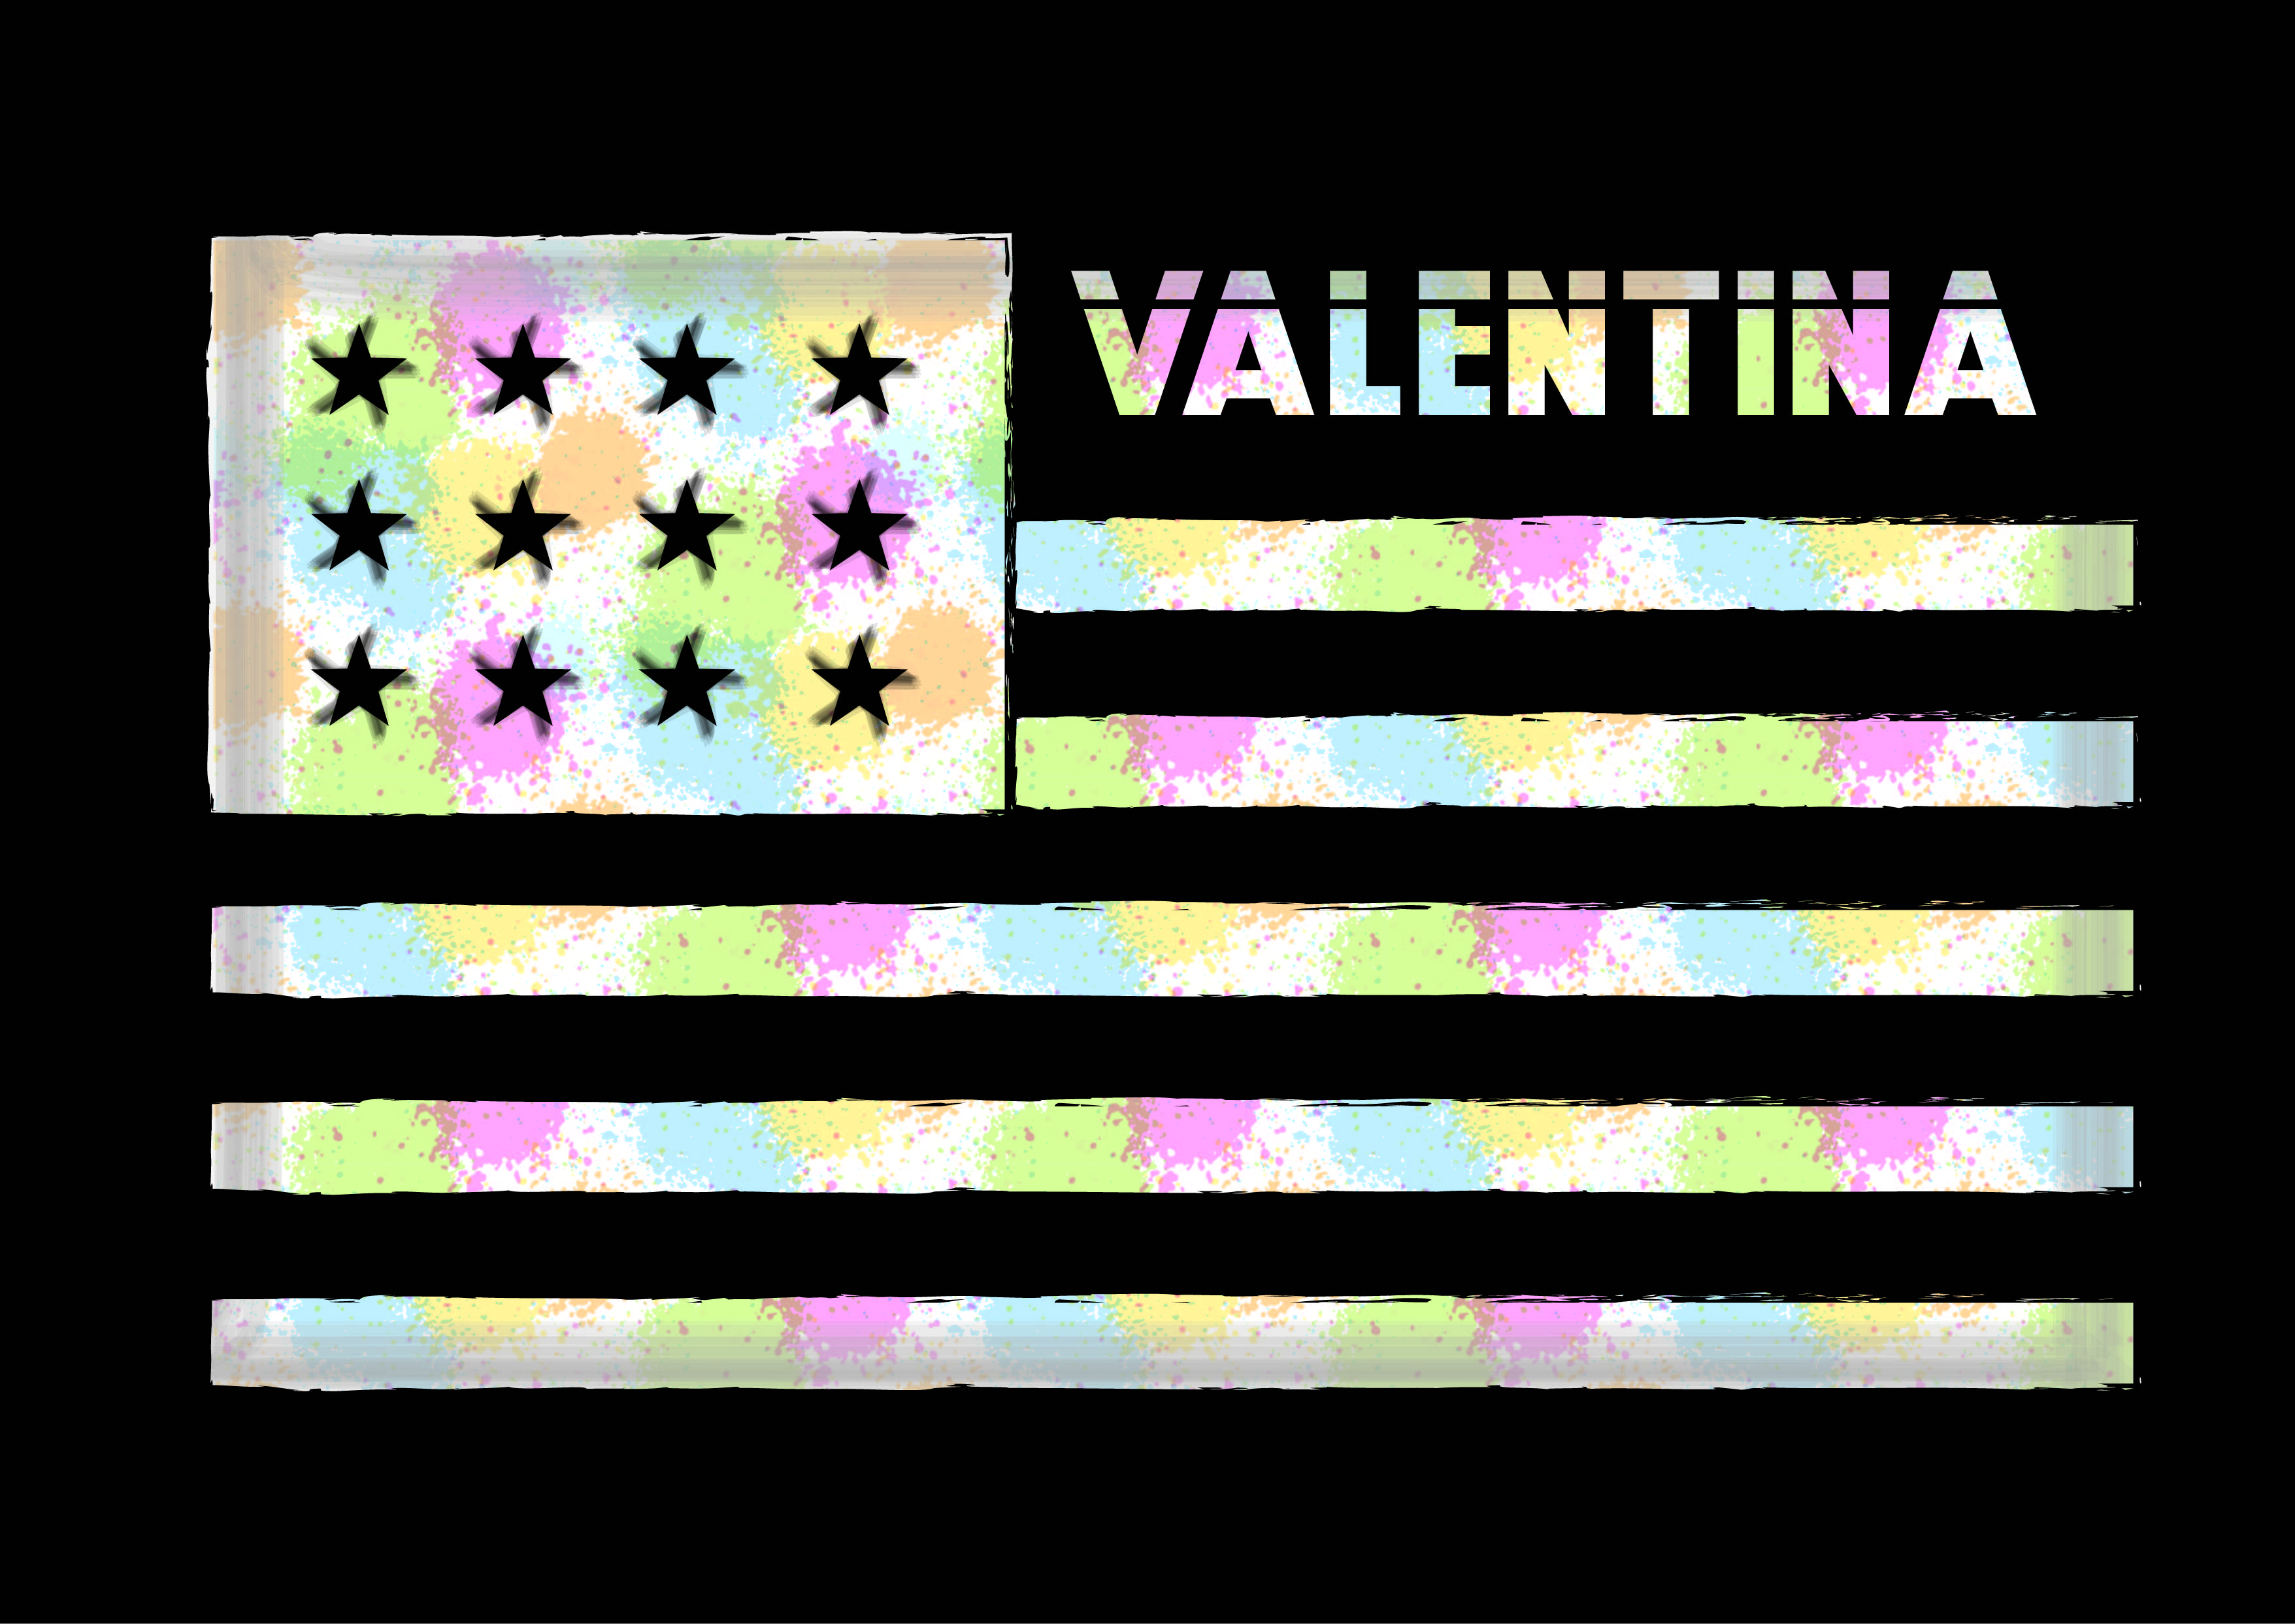 Download Free Valentina Graphic By Shirtgraphic Creative Fabrica for Cricut Explore, Silhouette and other cutting machines.